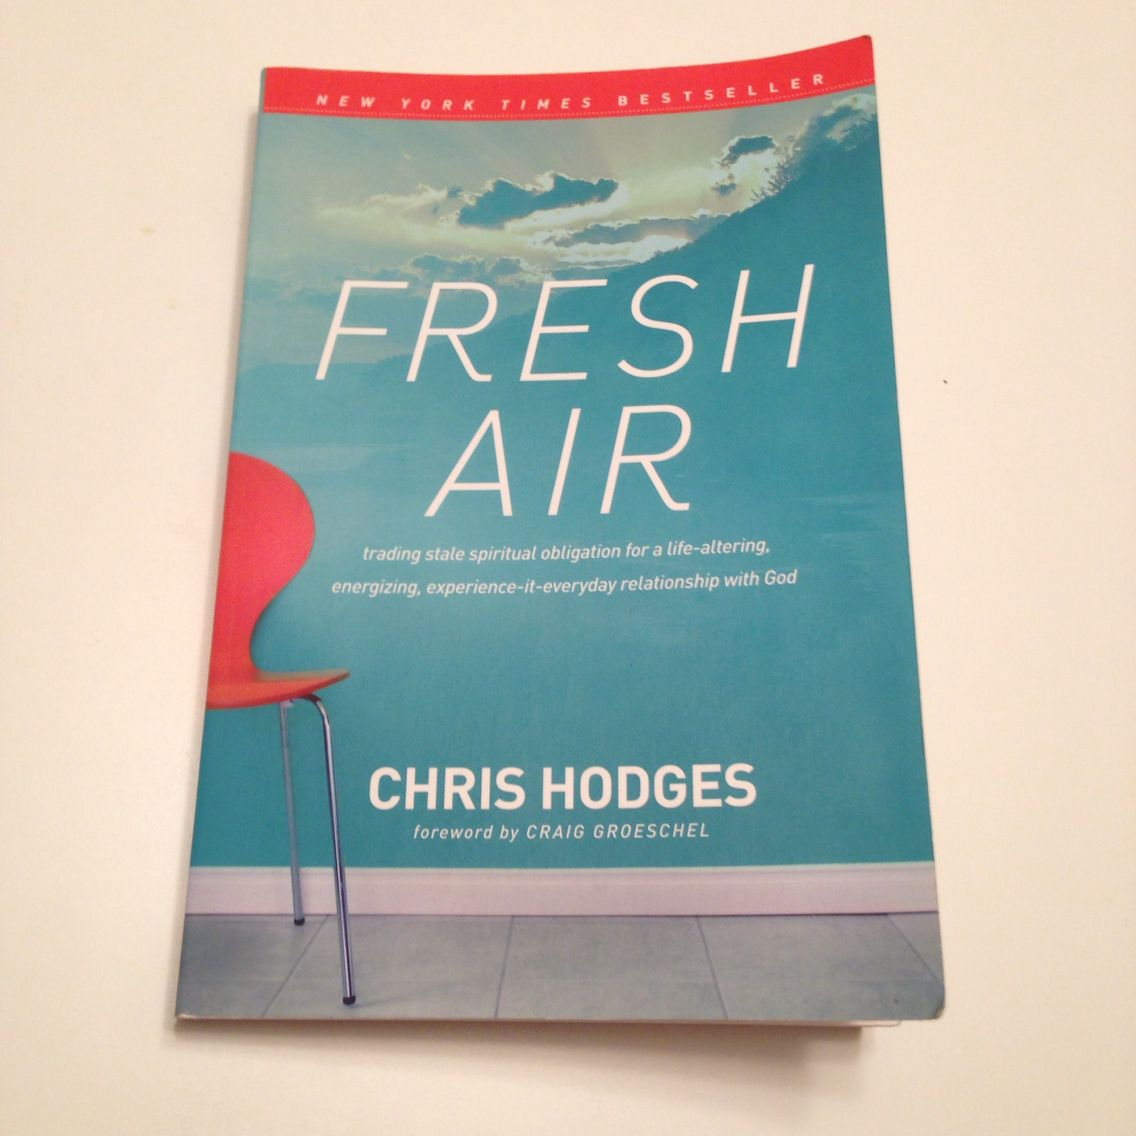 Excellent book by one of the greatest in person speakers I have ever seen.  Chris Hodges inspired me so much when I saw him speak in September 2014.  This book is a great book for anyone pursuing God, especially if you are in a dry spot in your relationship with God.